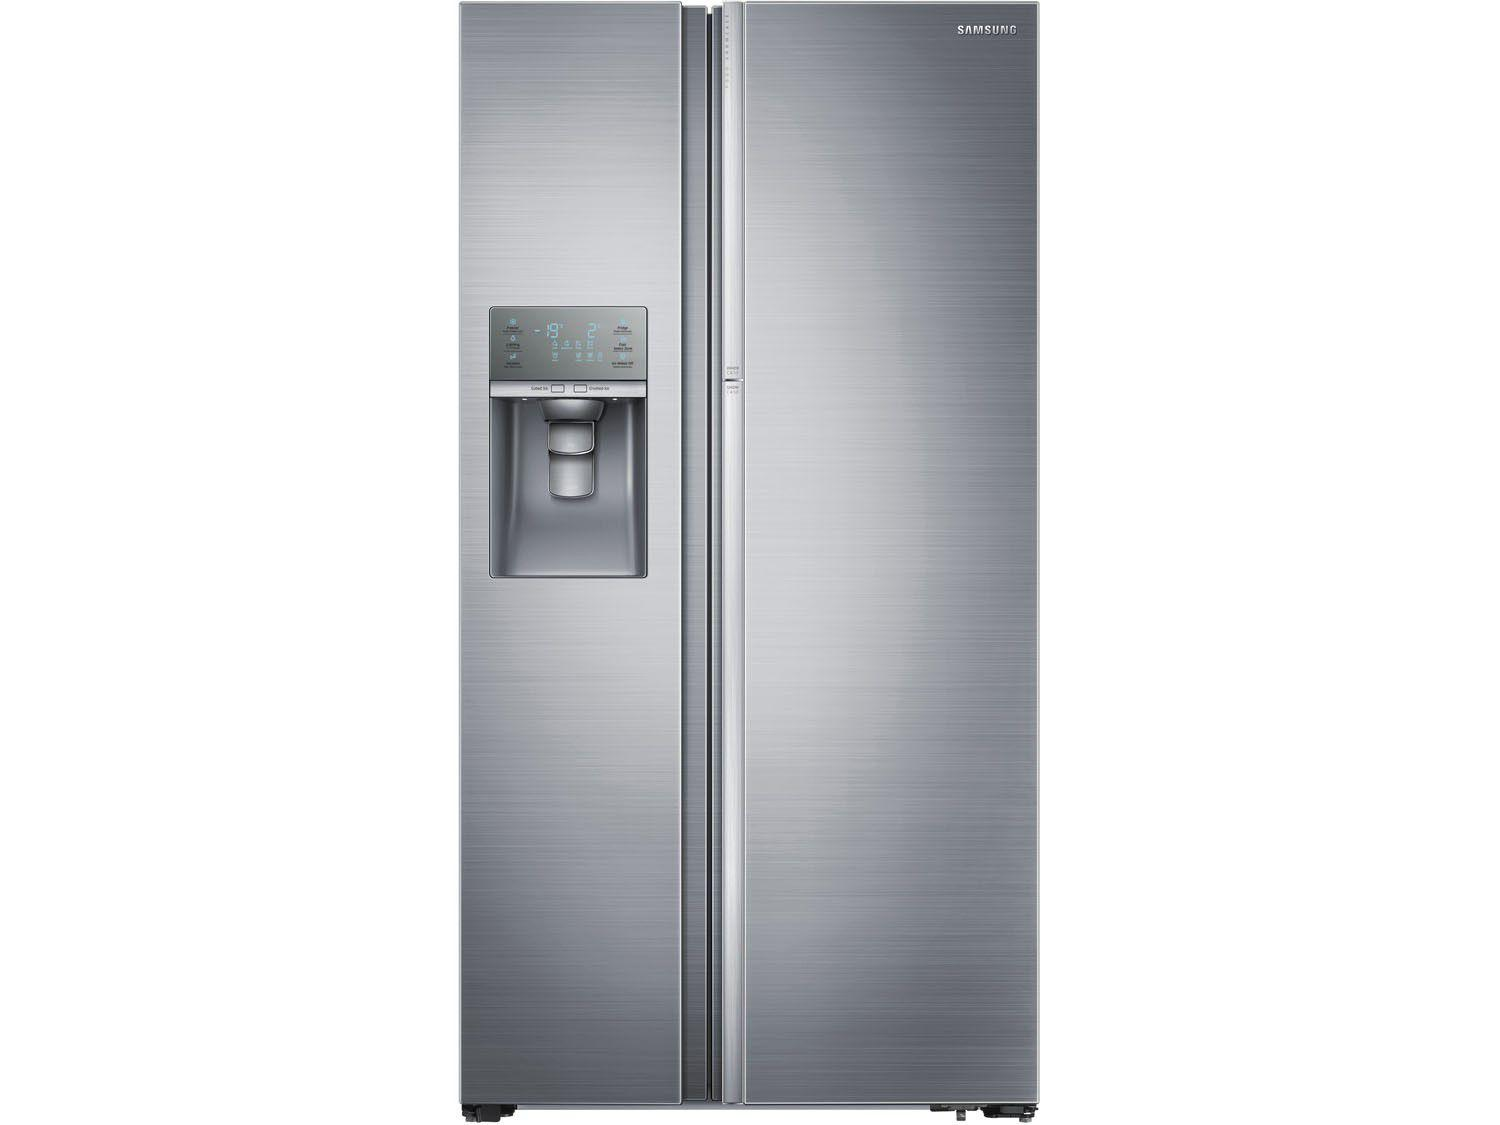 geladeira refrigerador samsung inox side by side 765l dispenser de gua food showcase. Black Bedroom Furniture Sets. Home Design Ideas